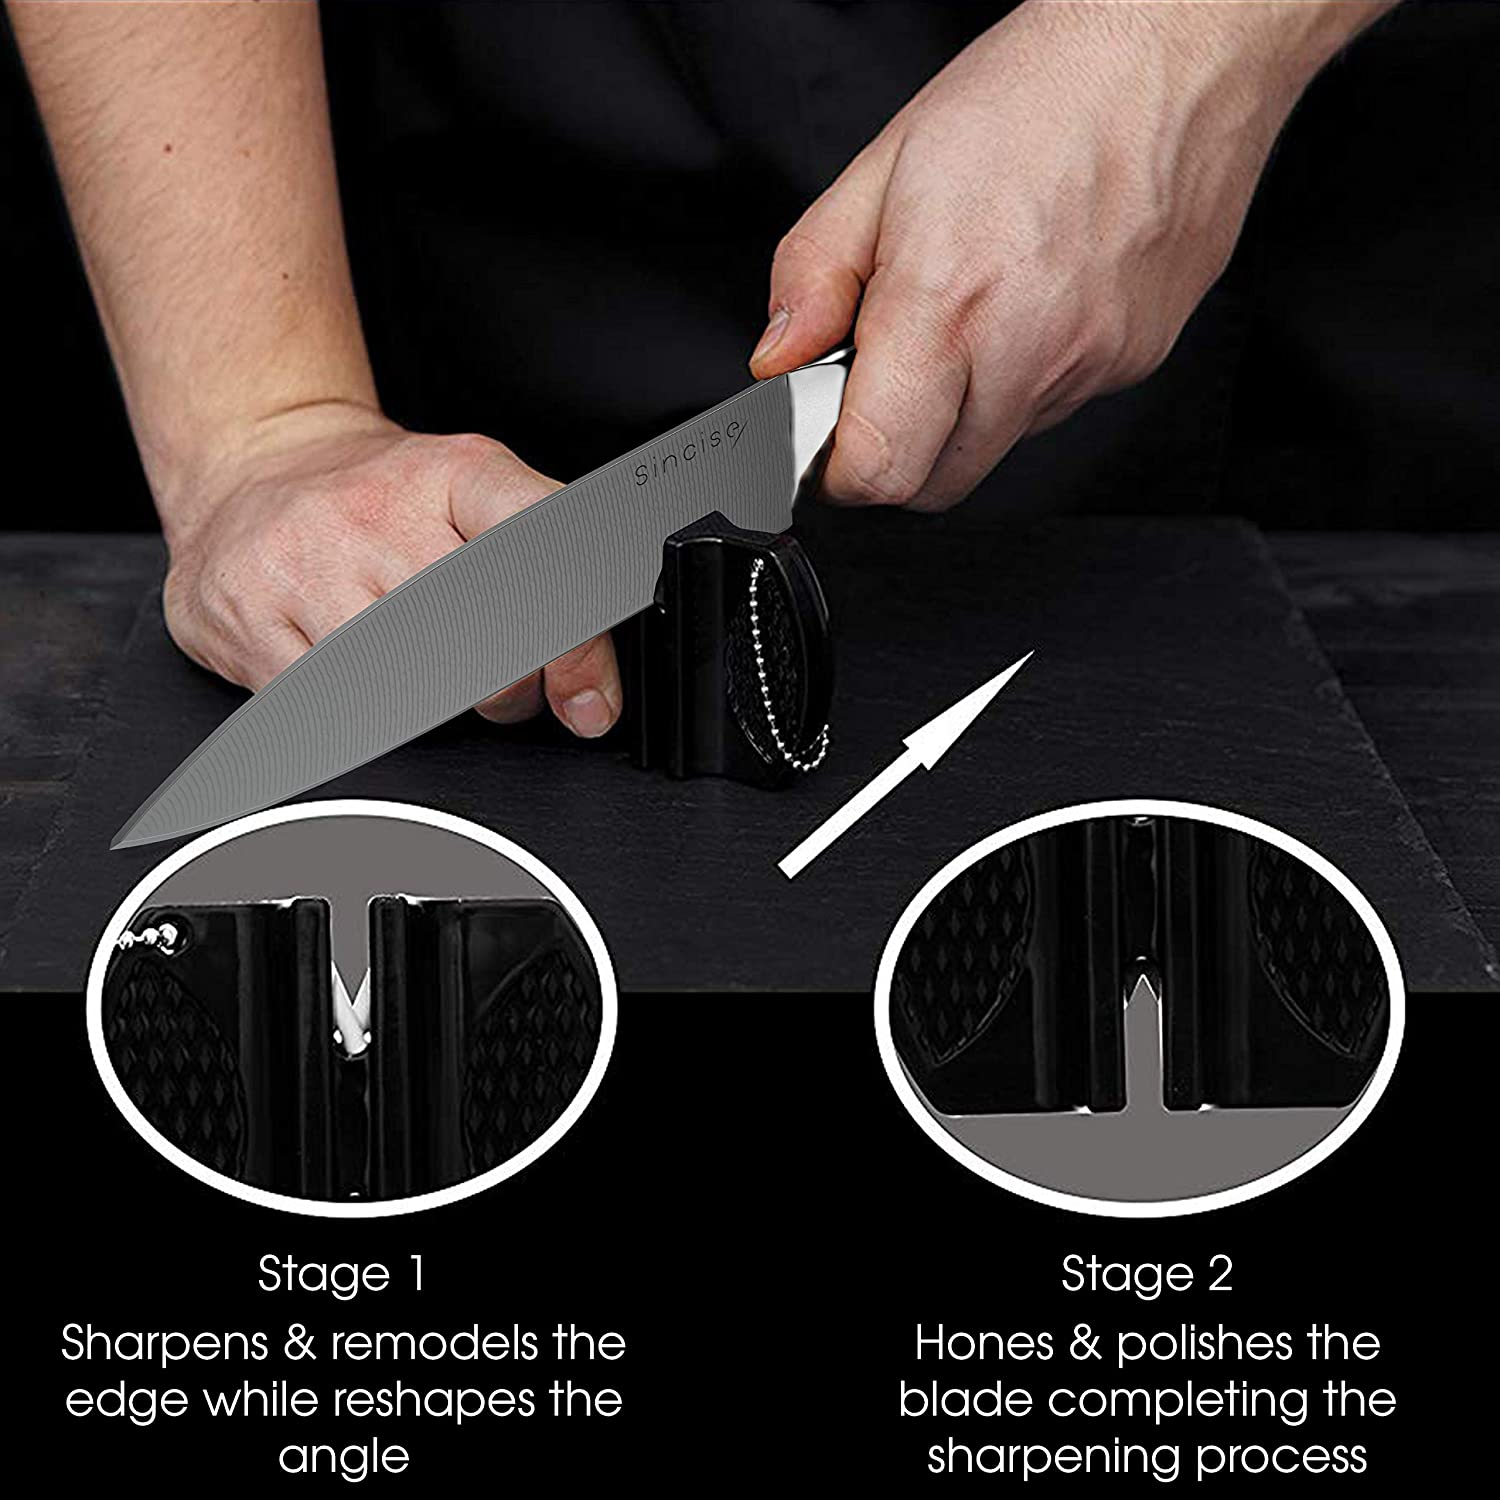 Amazon.com: Cuchillo Sincise Chef de 7.9 in – Cuchillo ...